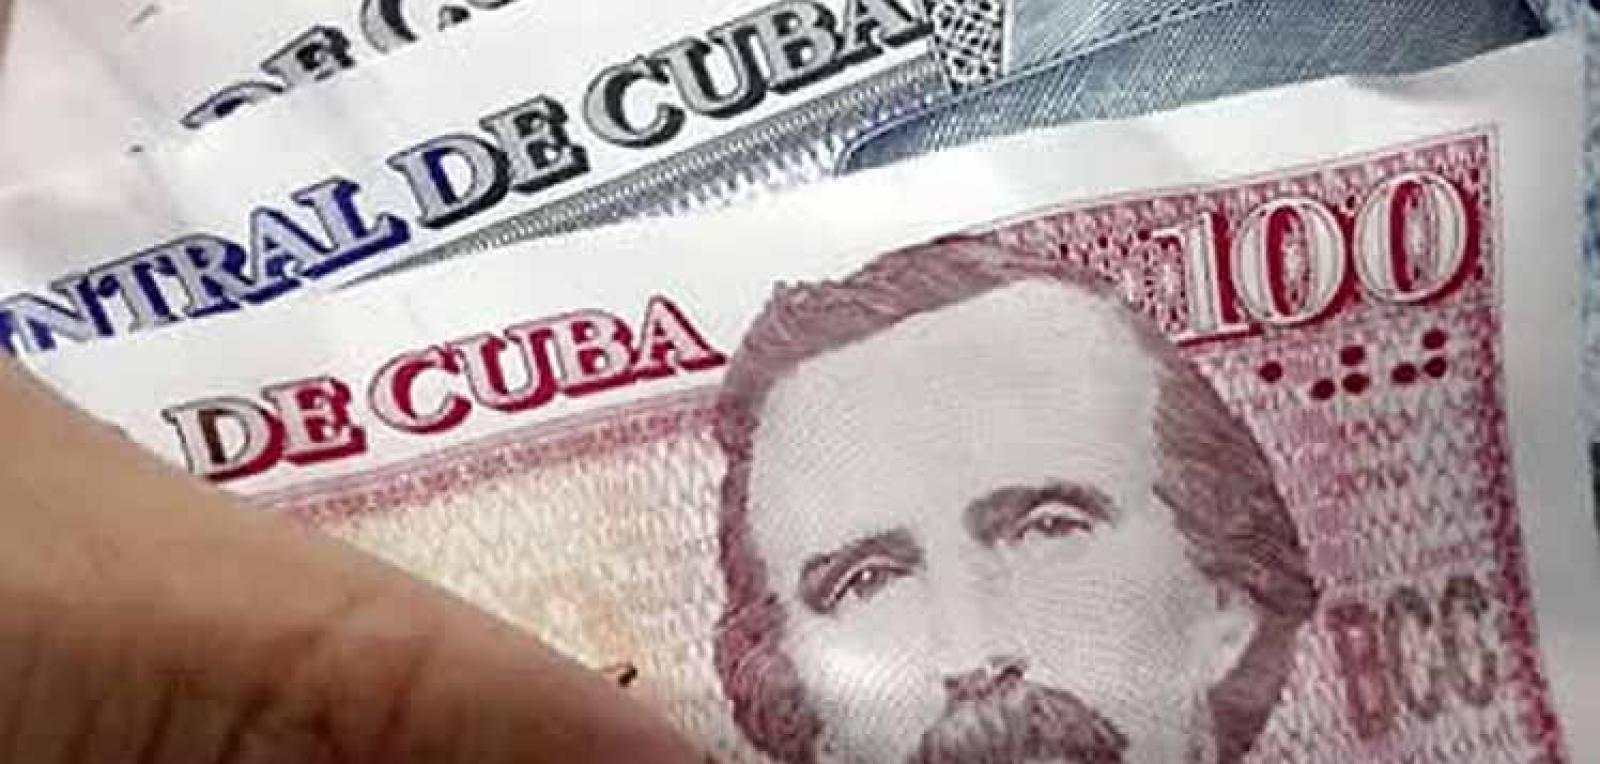 Cuba adjust its financial system to the currency overhaul